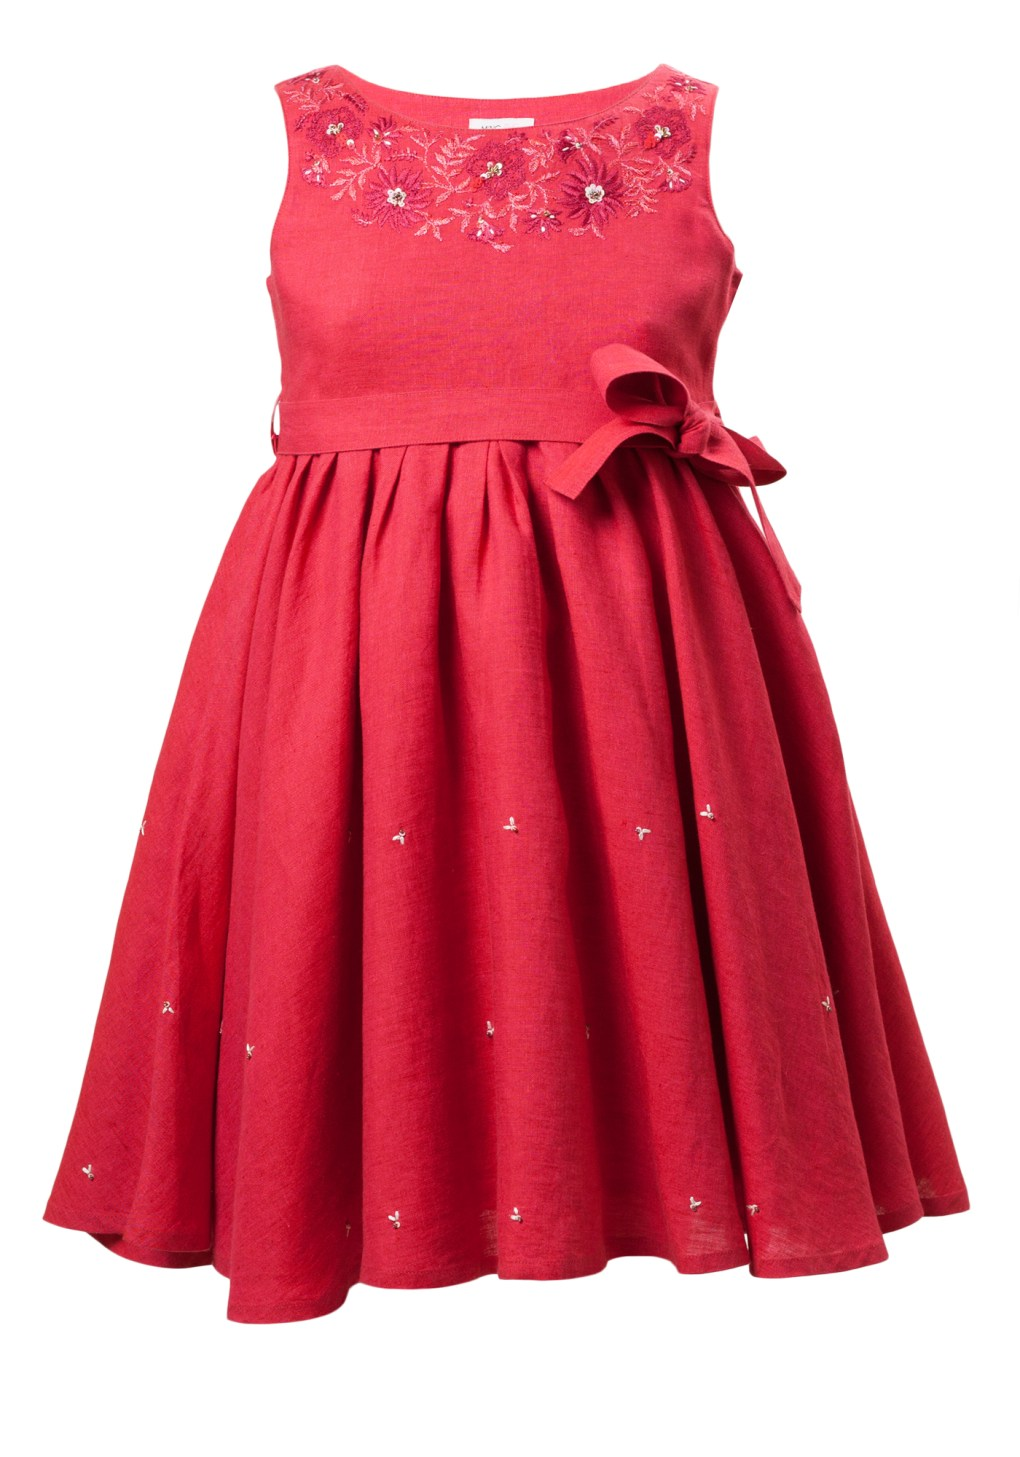 MINC Petite Garnet Fun Girls Embroidered Short Dress in Fuchsia Linen